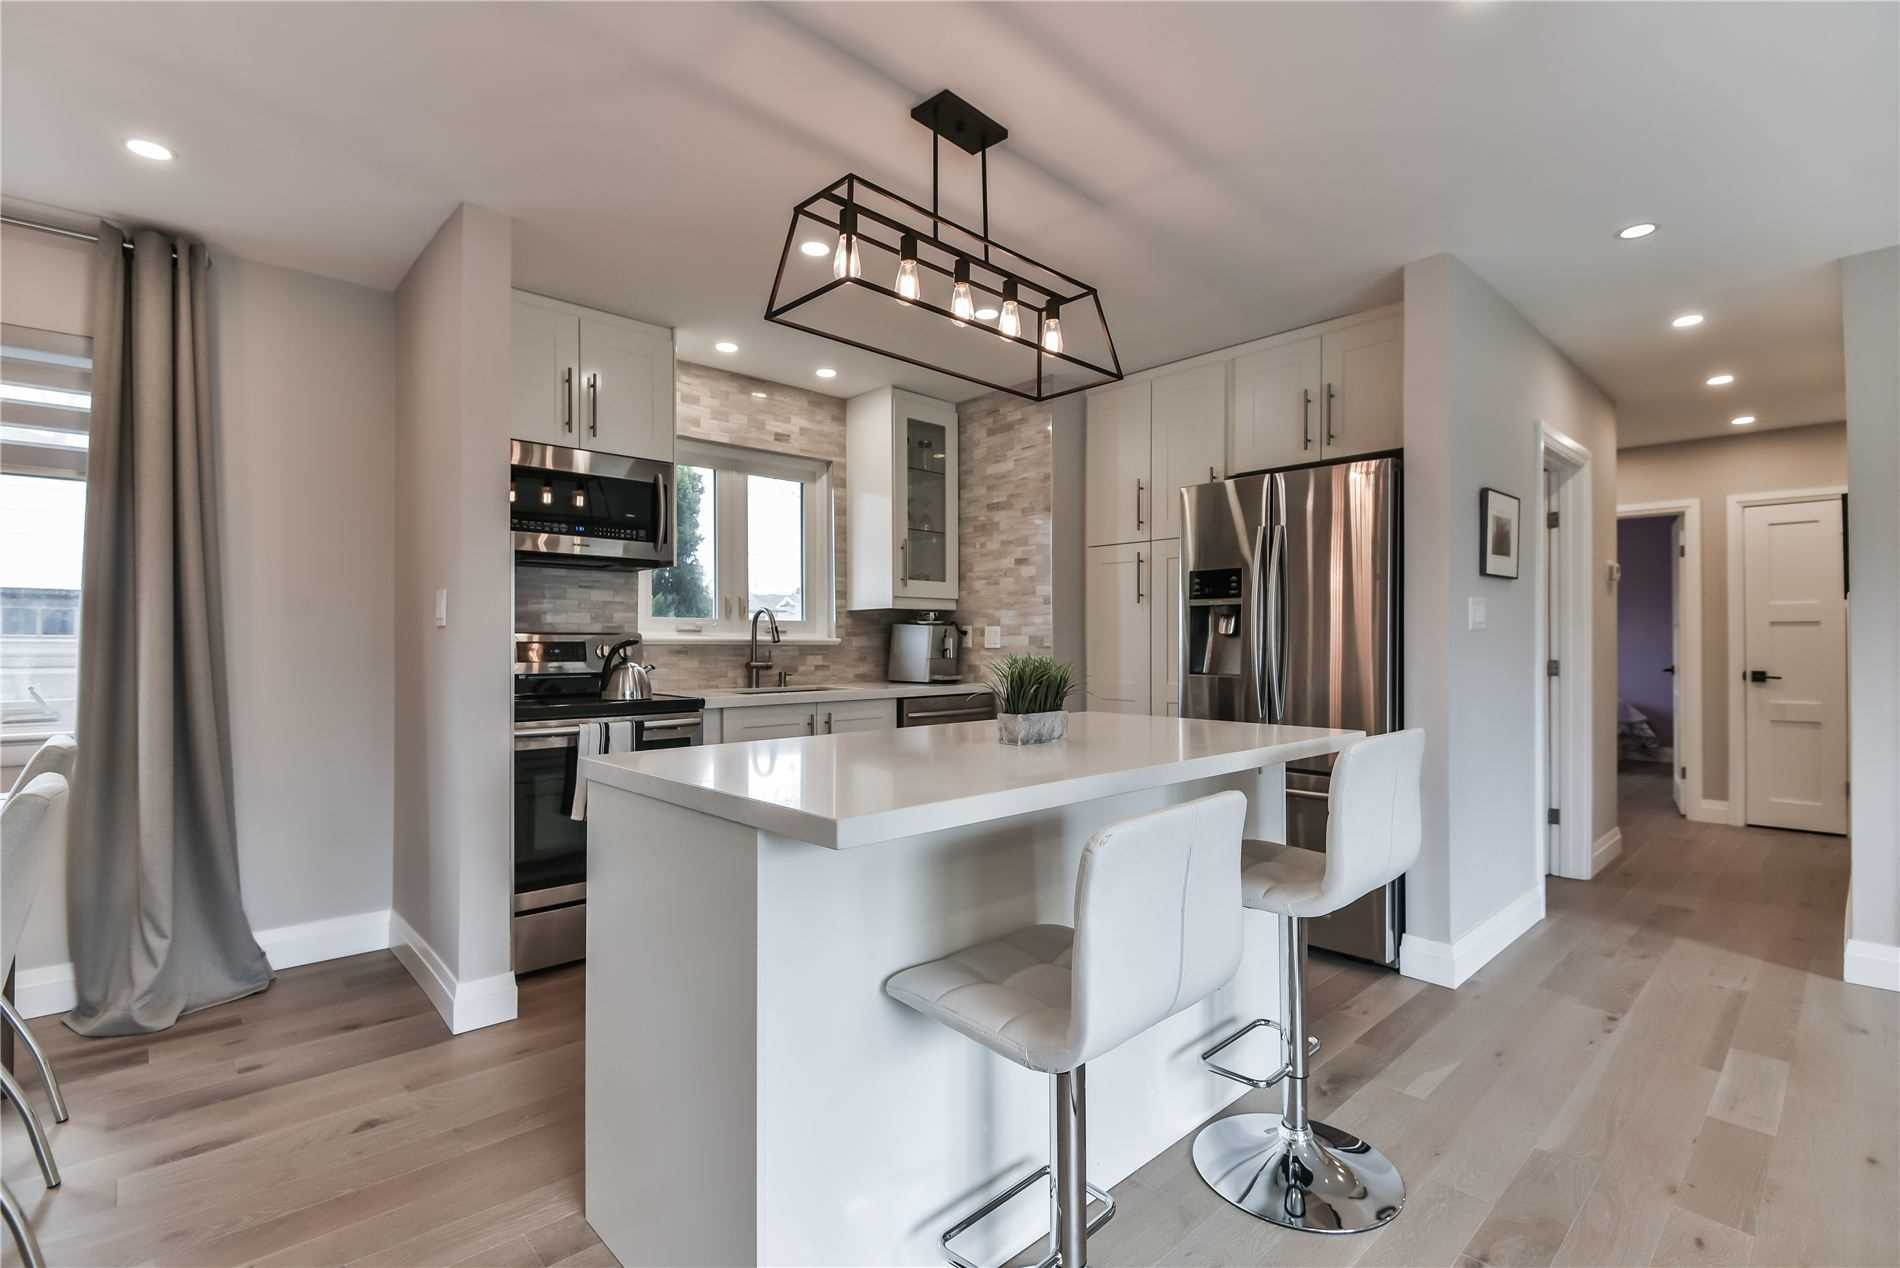 For Sale: 1363 Bridge Road, Oakville, ON   3 Bed, 2 Bath House for $999900.00. See 20 photos!